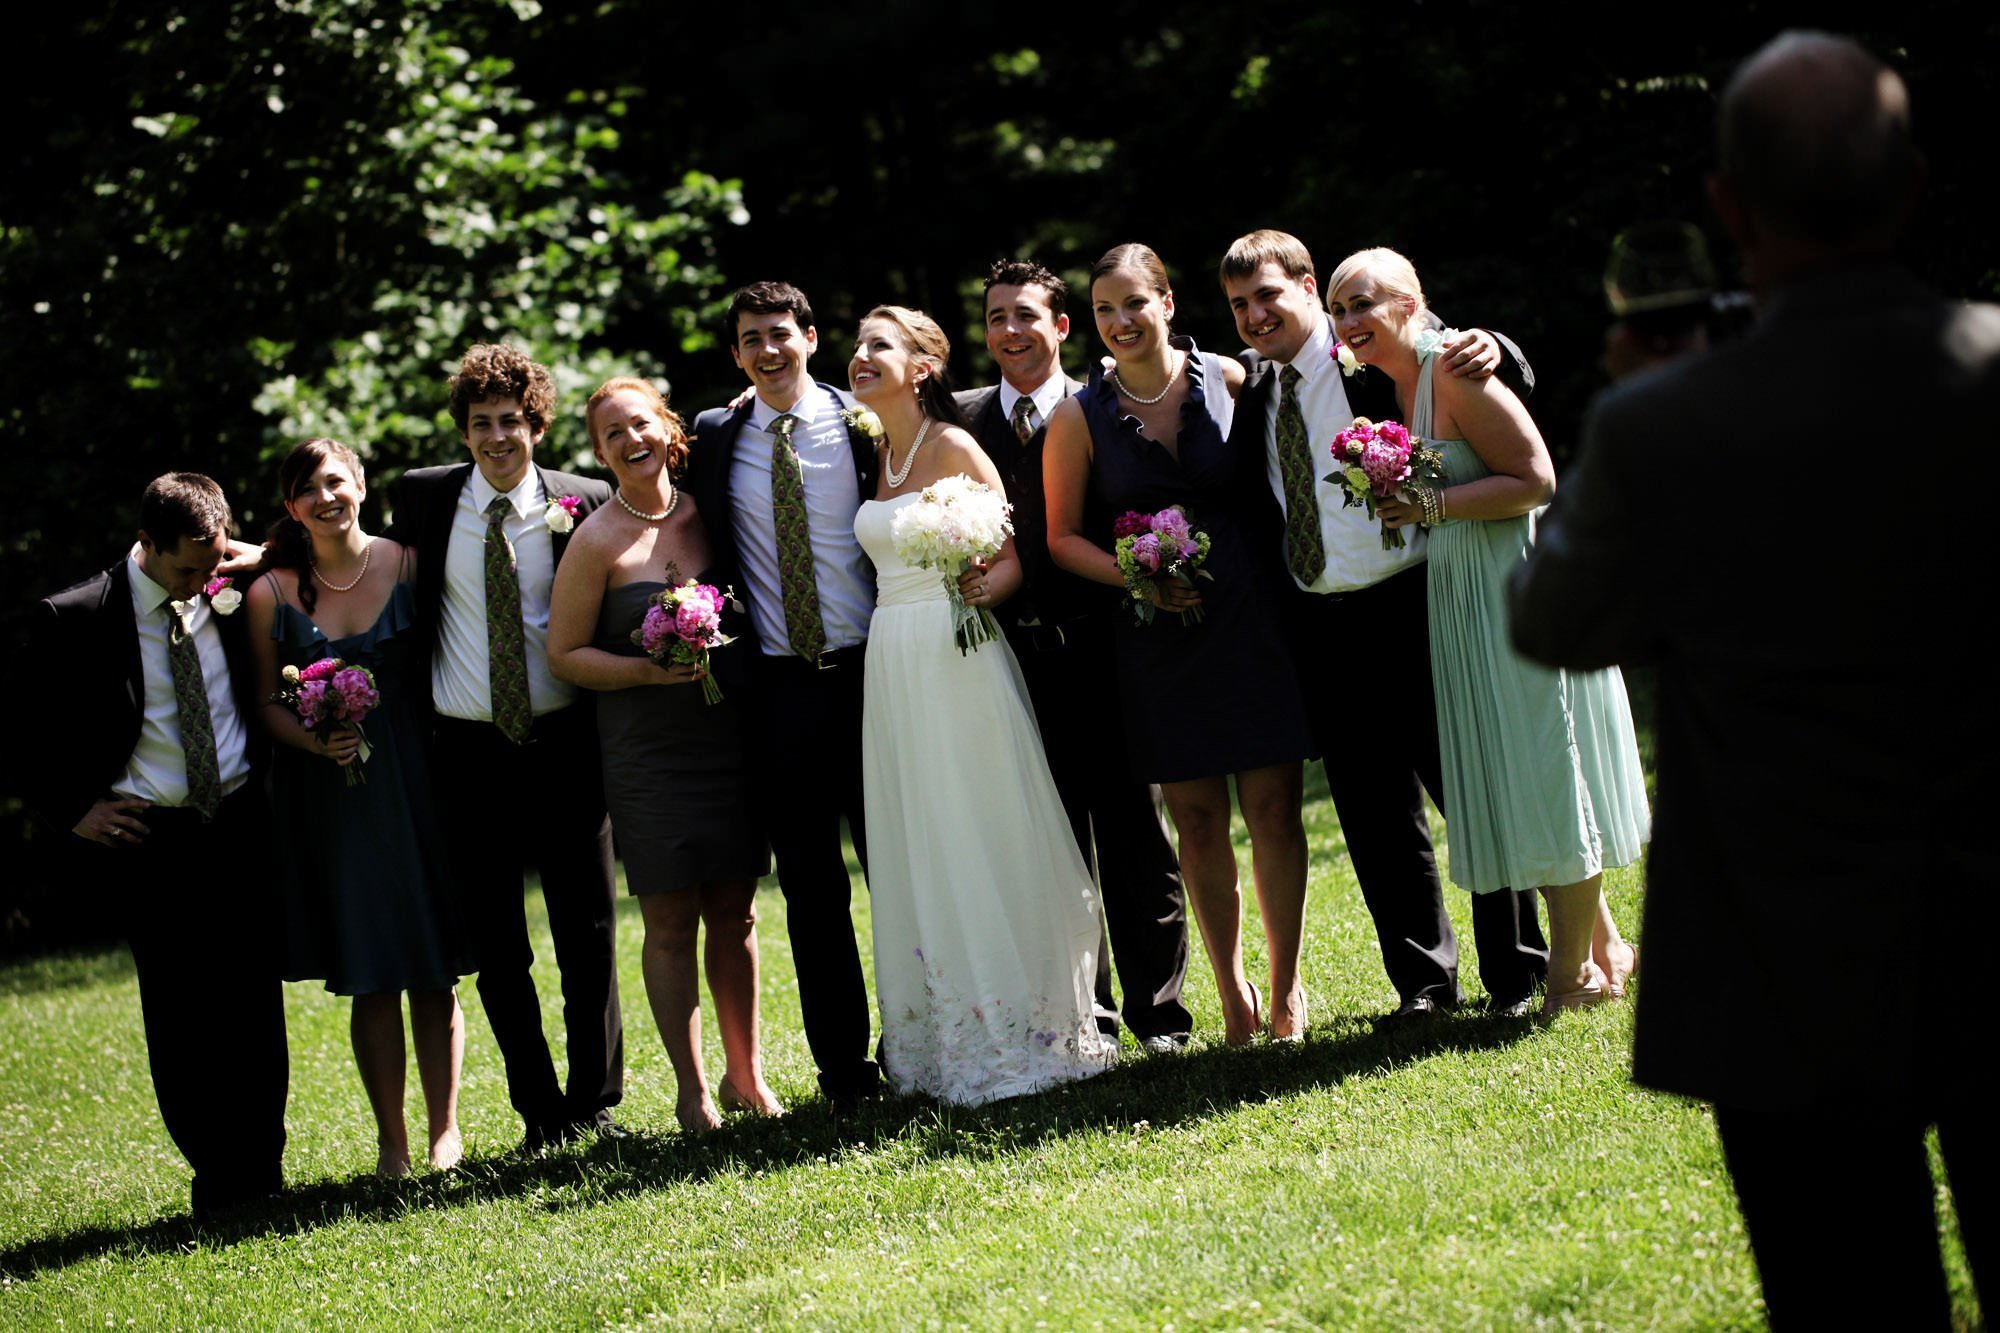 The wedding party poses for a portrait on the grounds of Woodend Sanctuary & Mansion.